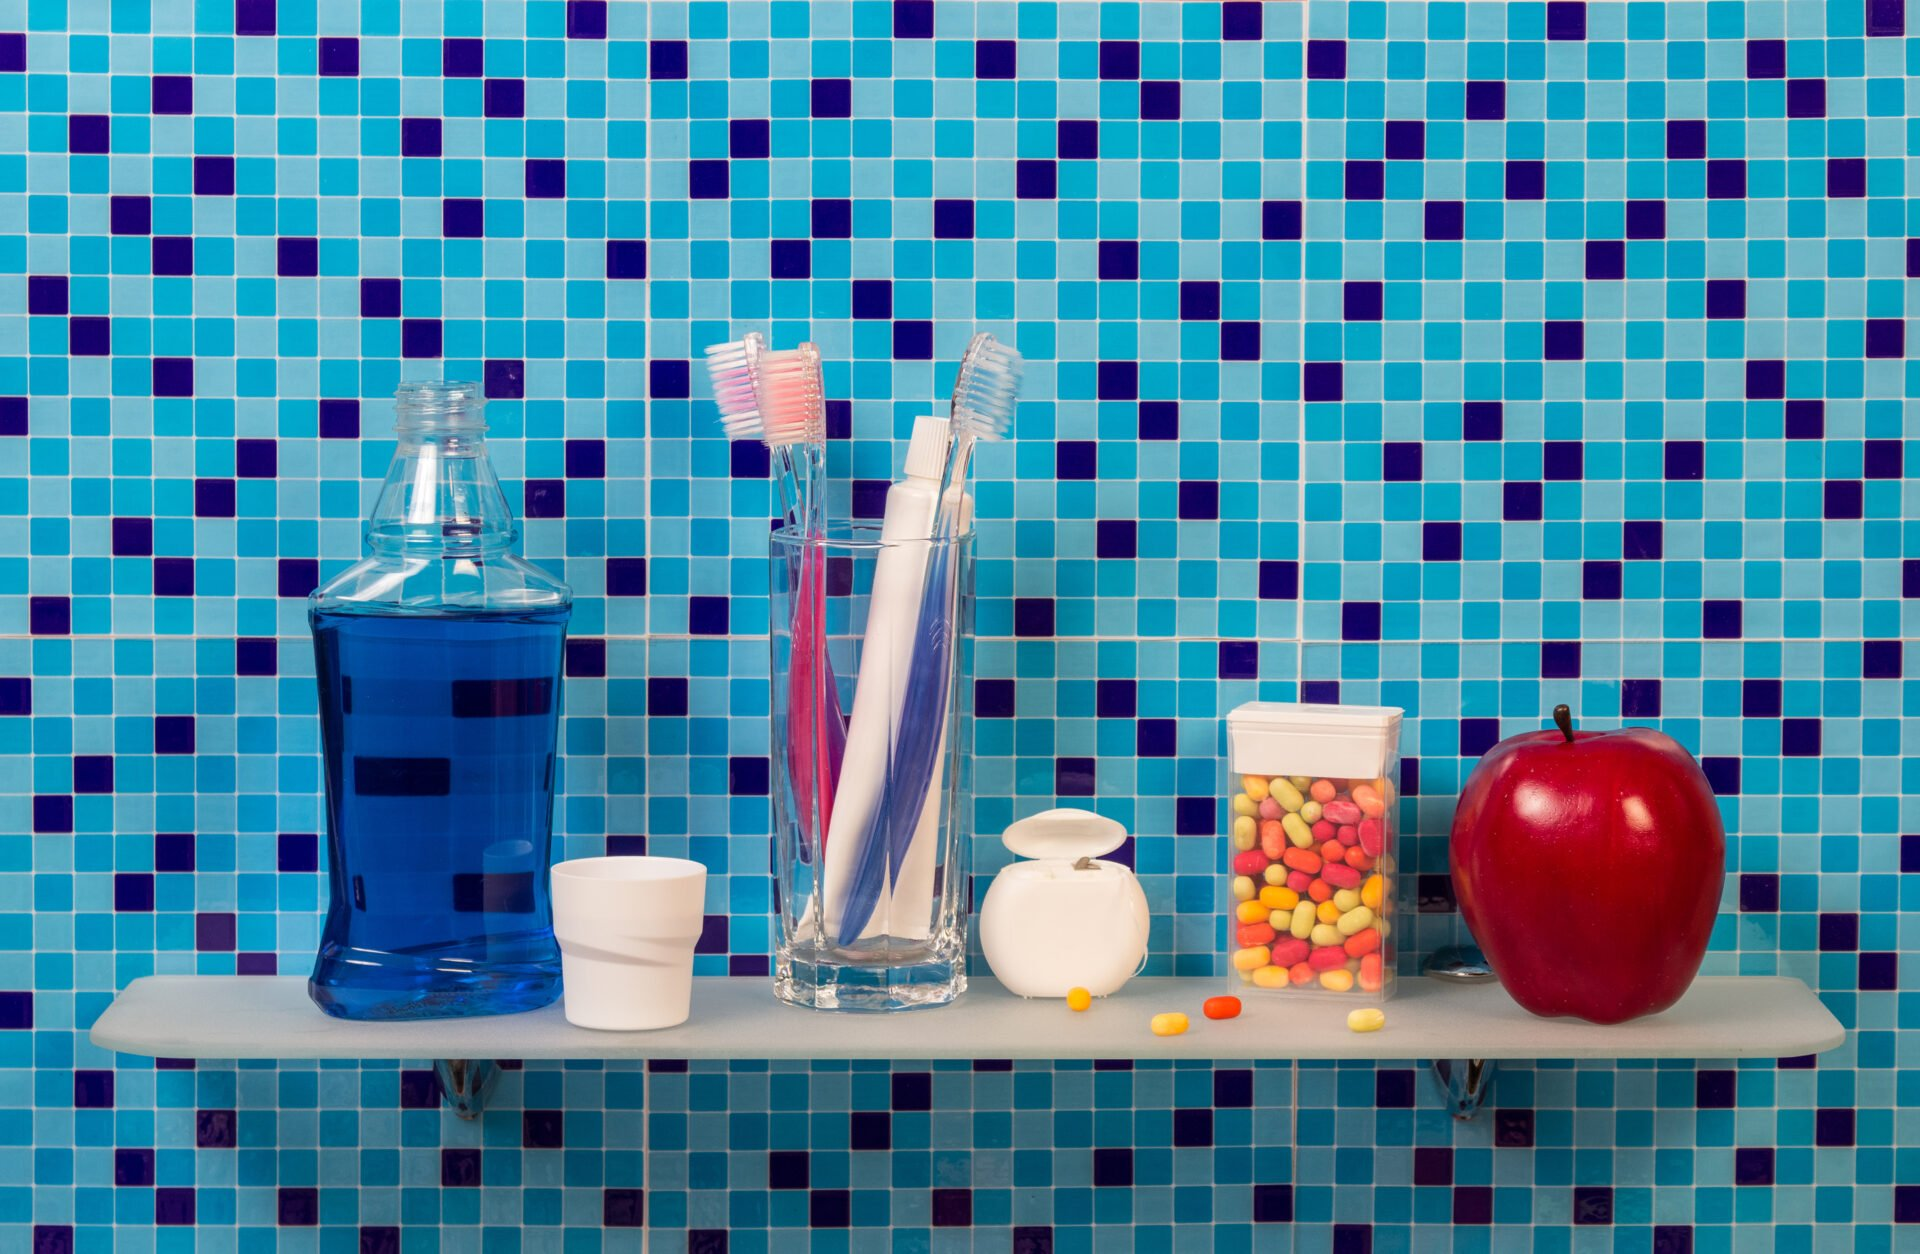 mouthwash, toothpaste, tooth brushes on a shelf in the bathroom